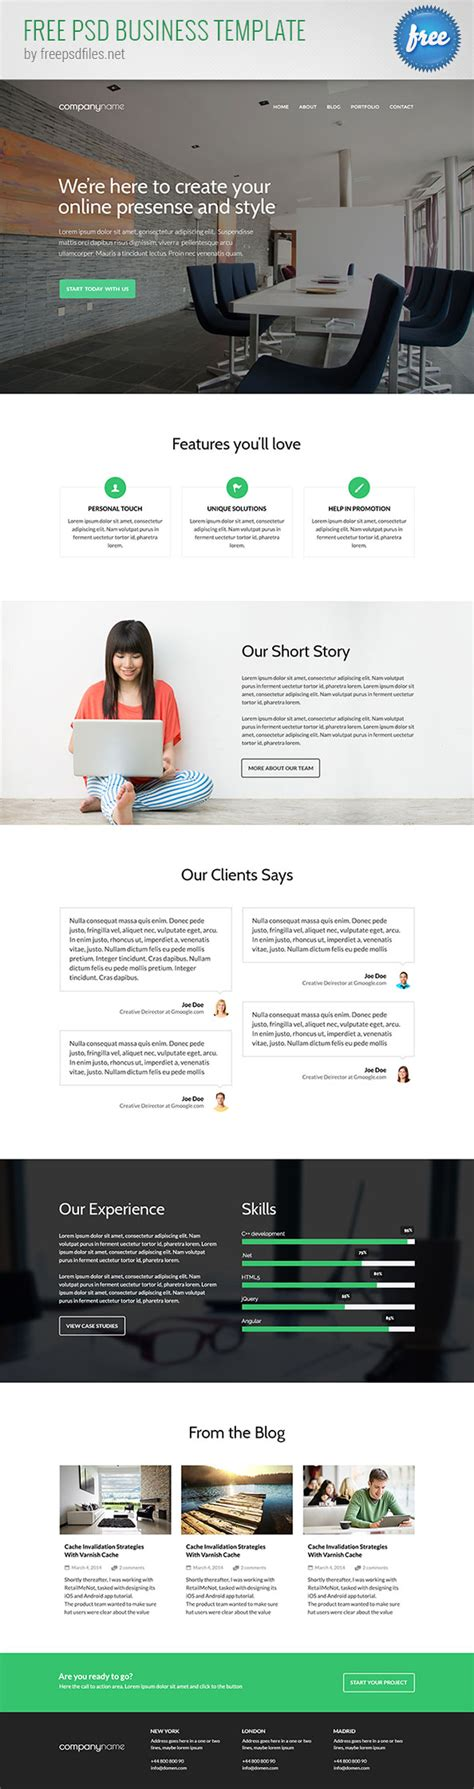 business website templates free free psd business website template